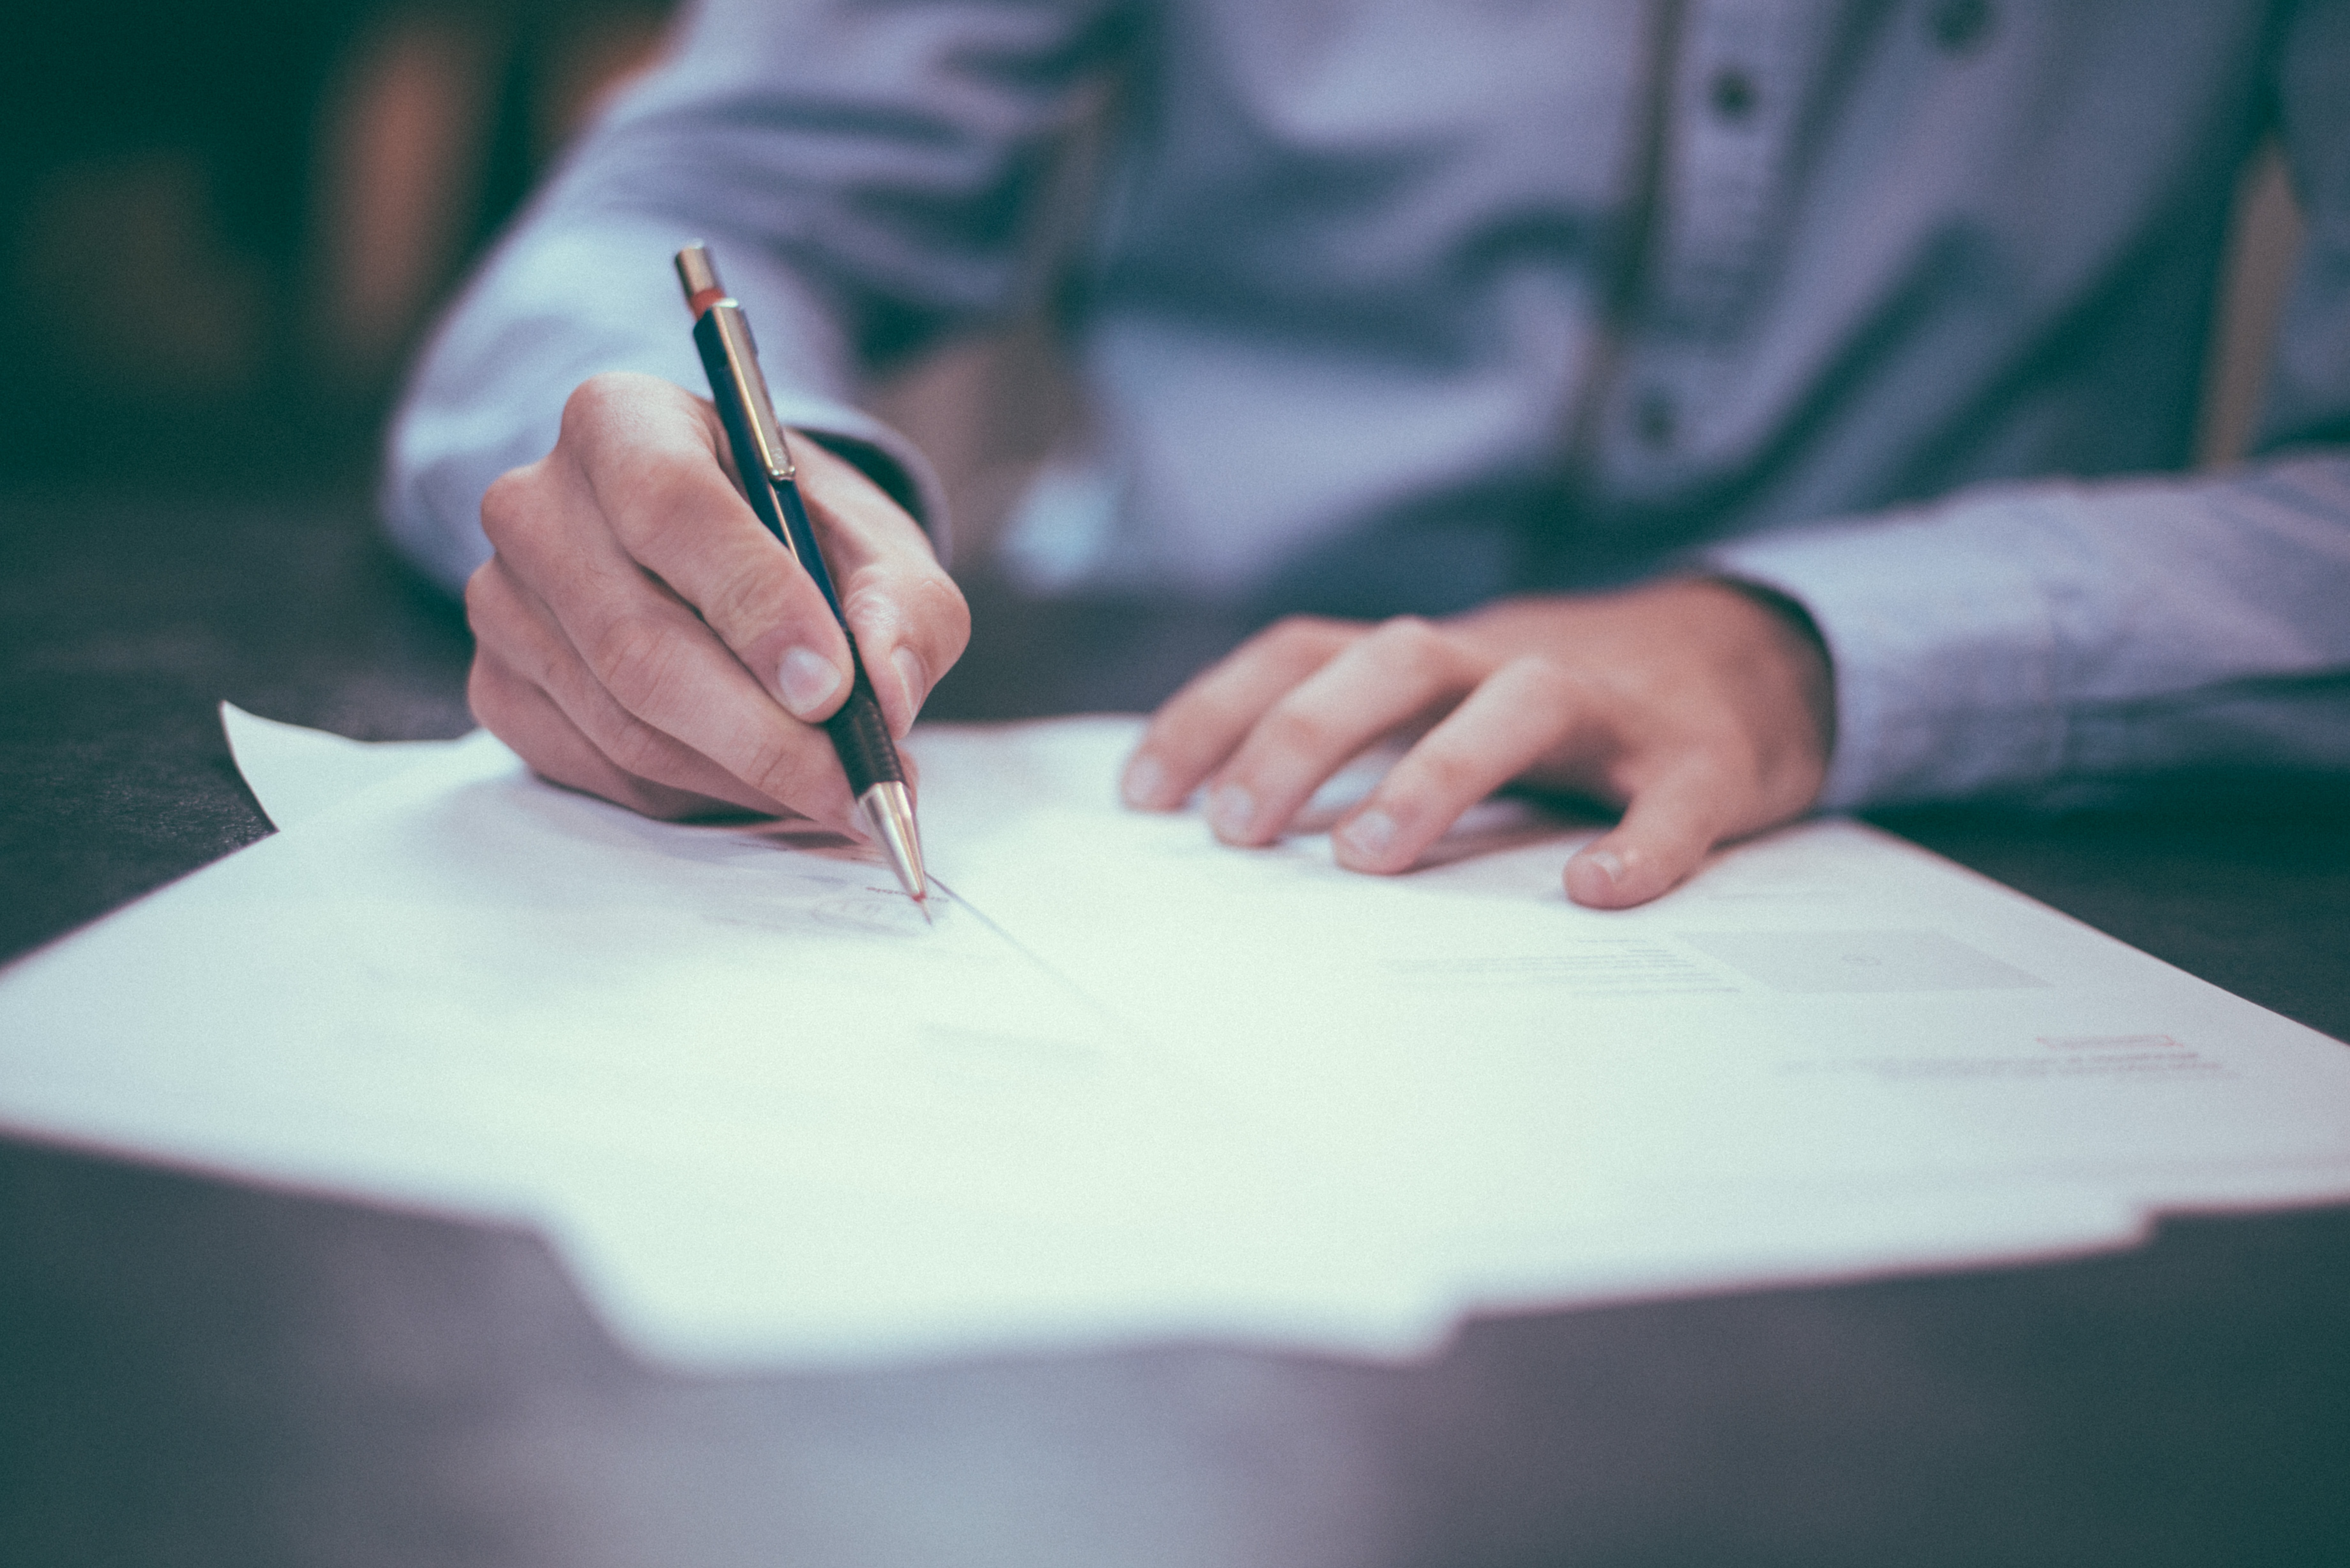 Focus areas for concluding data processing agreements